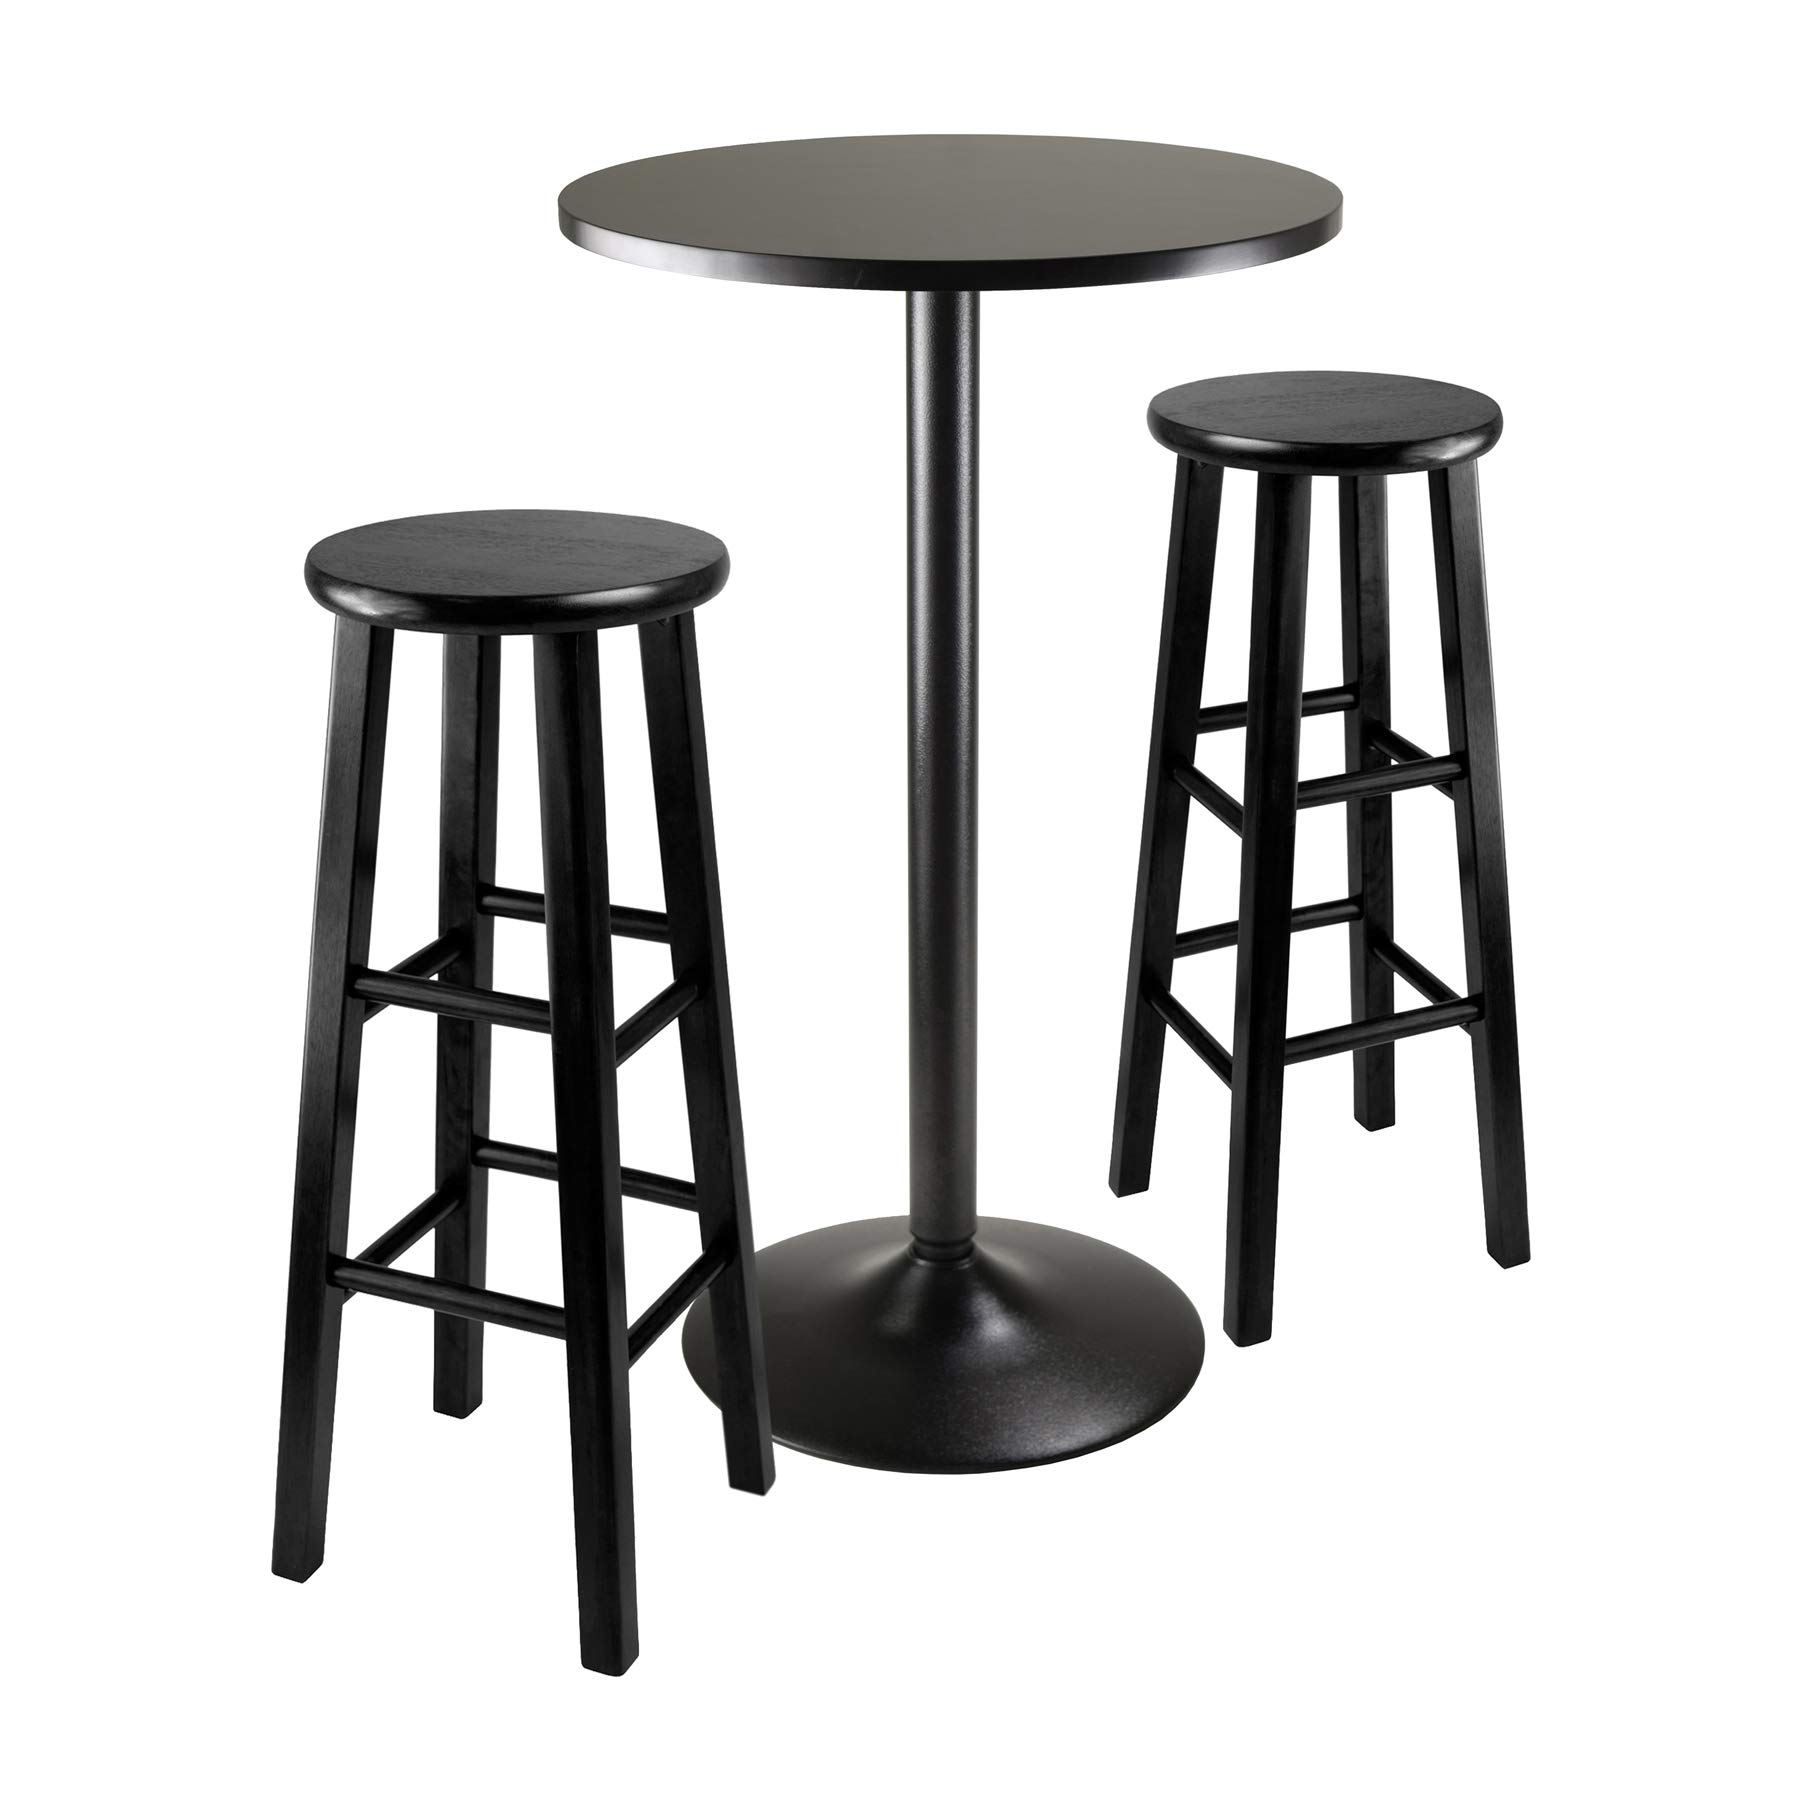 Winsome Obsidian Pub Table Set, 1, Black by Winsome